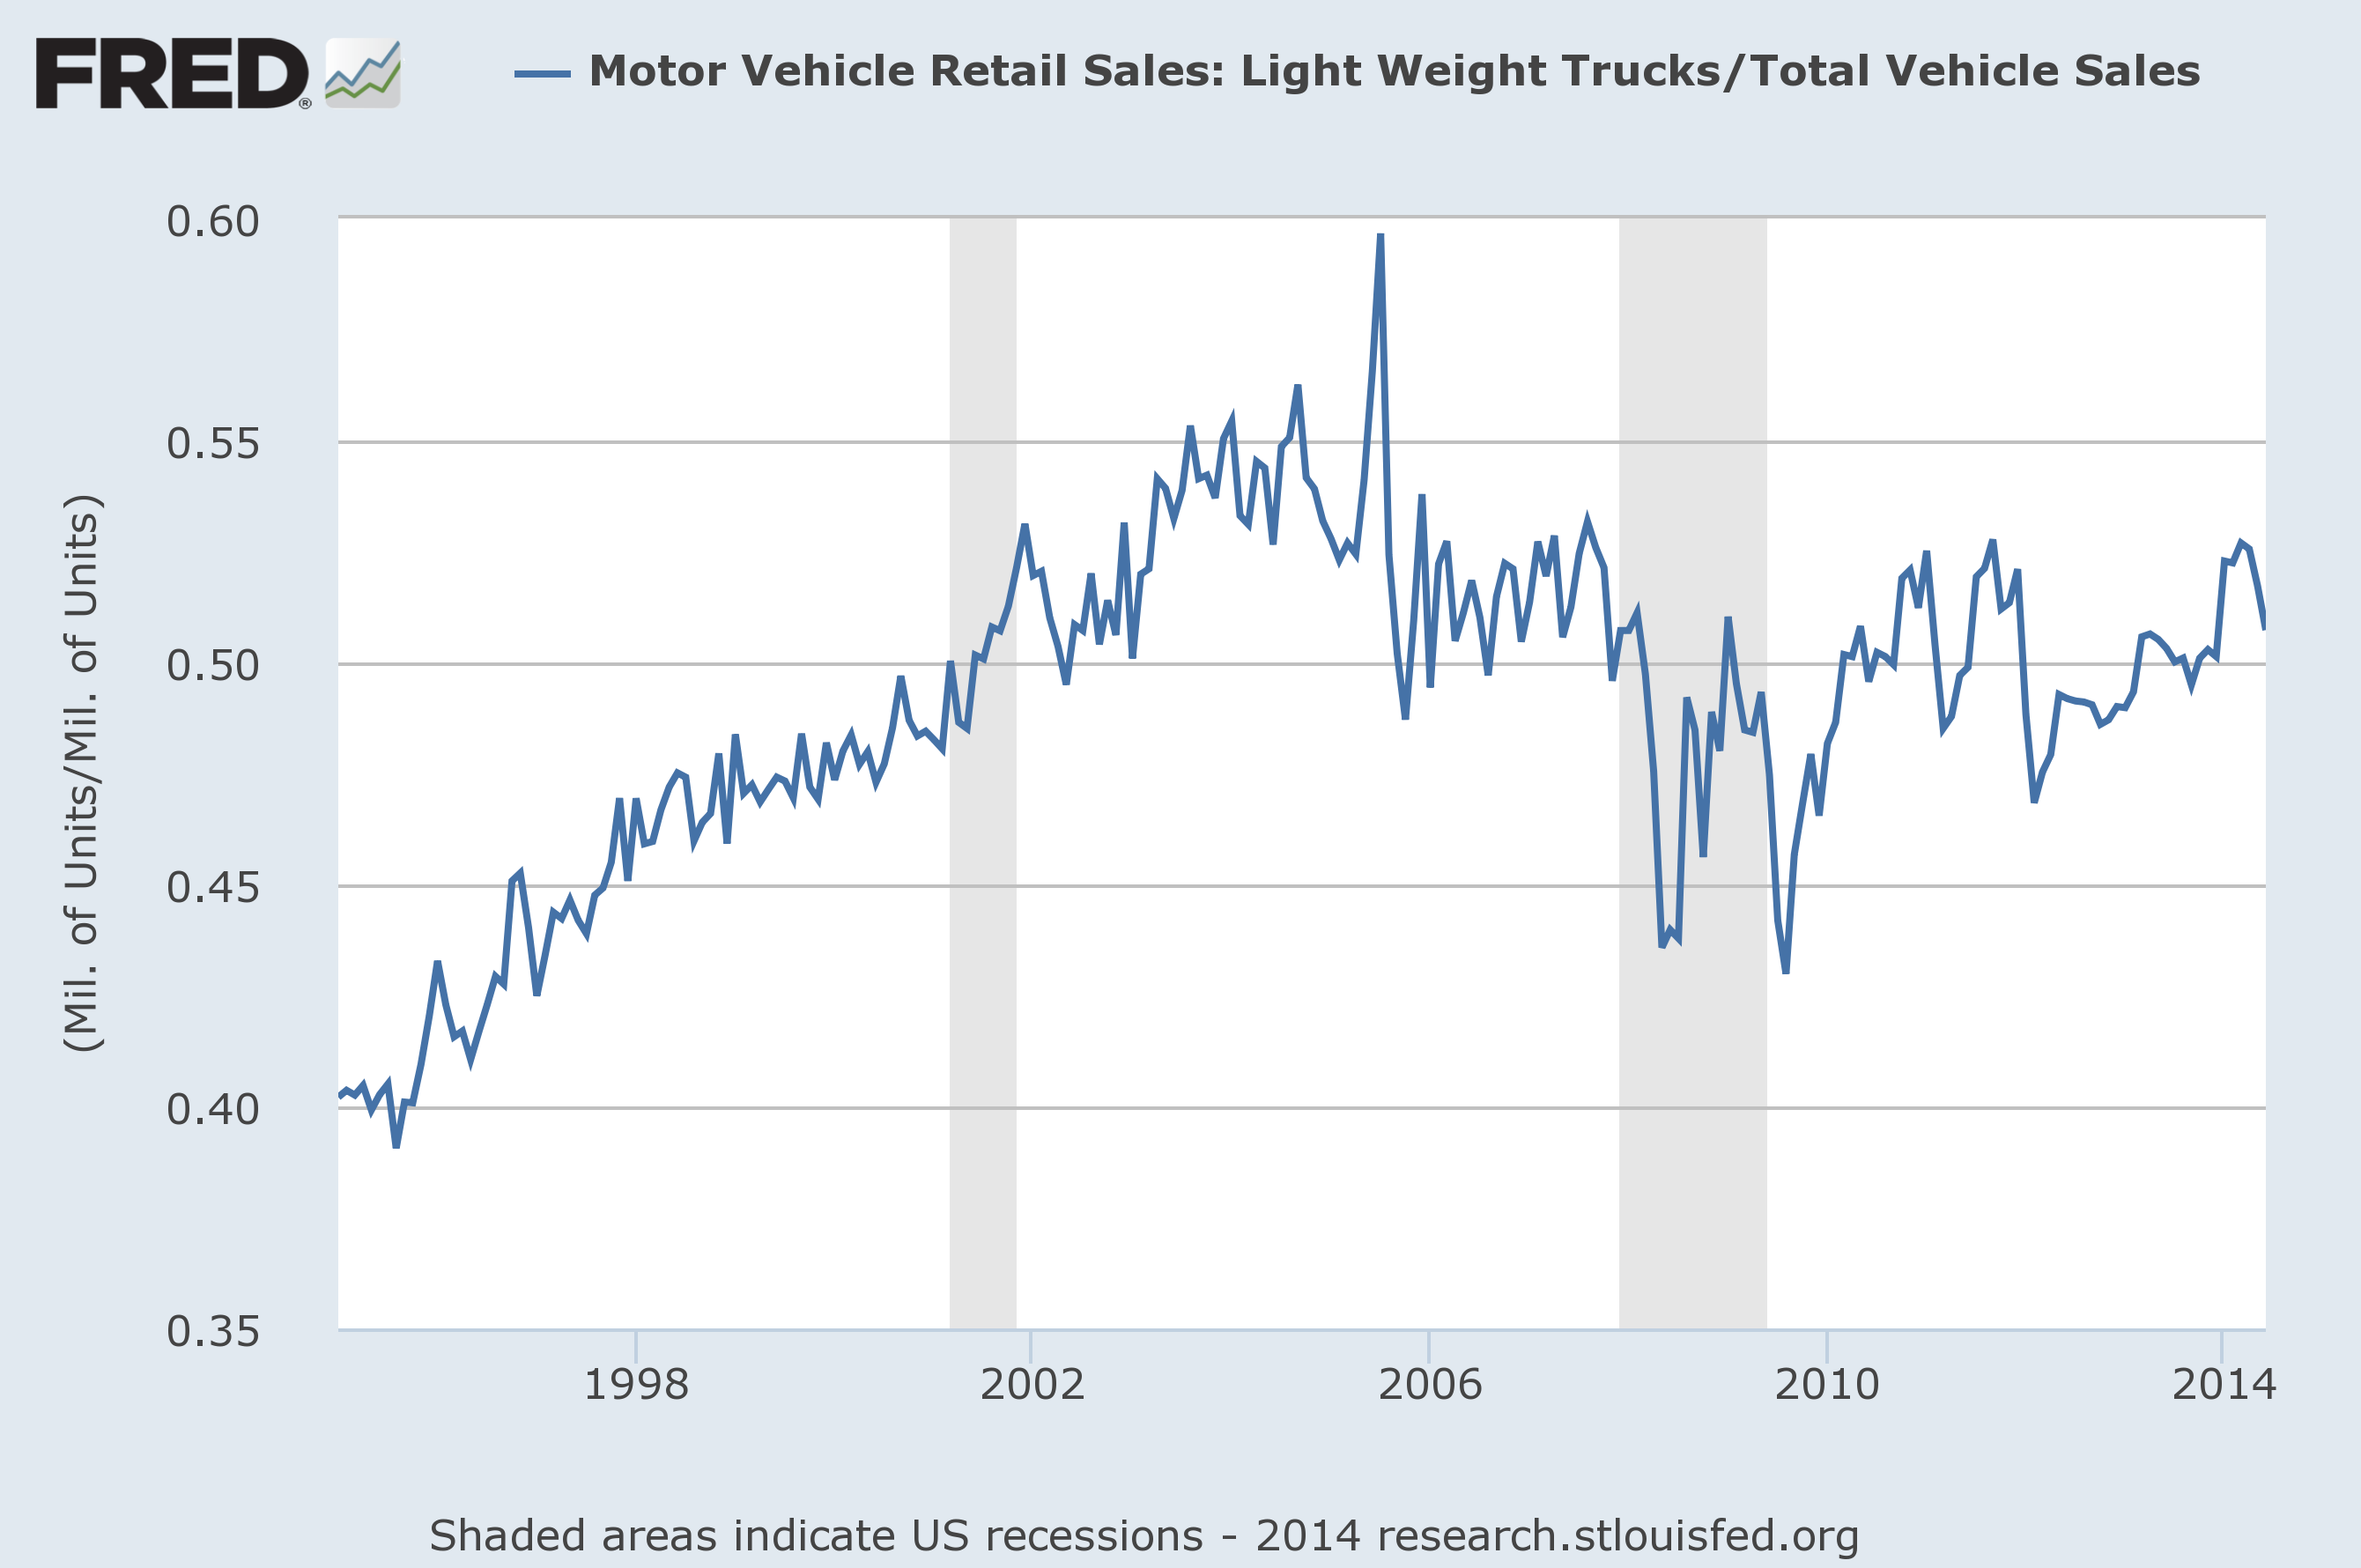 Truck sales as percentage of total sales